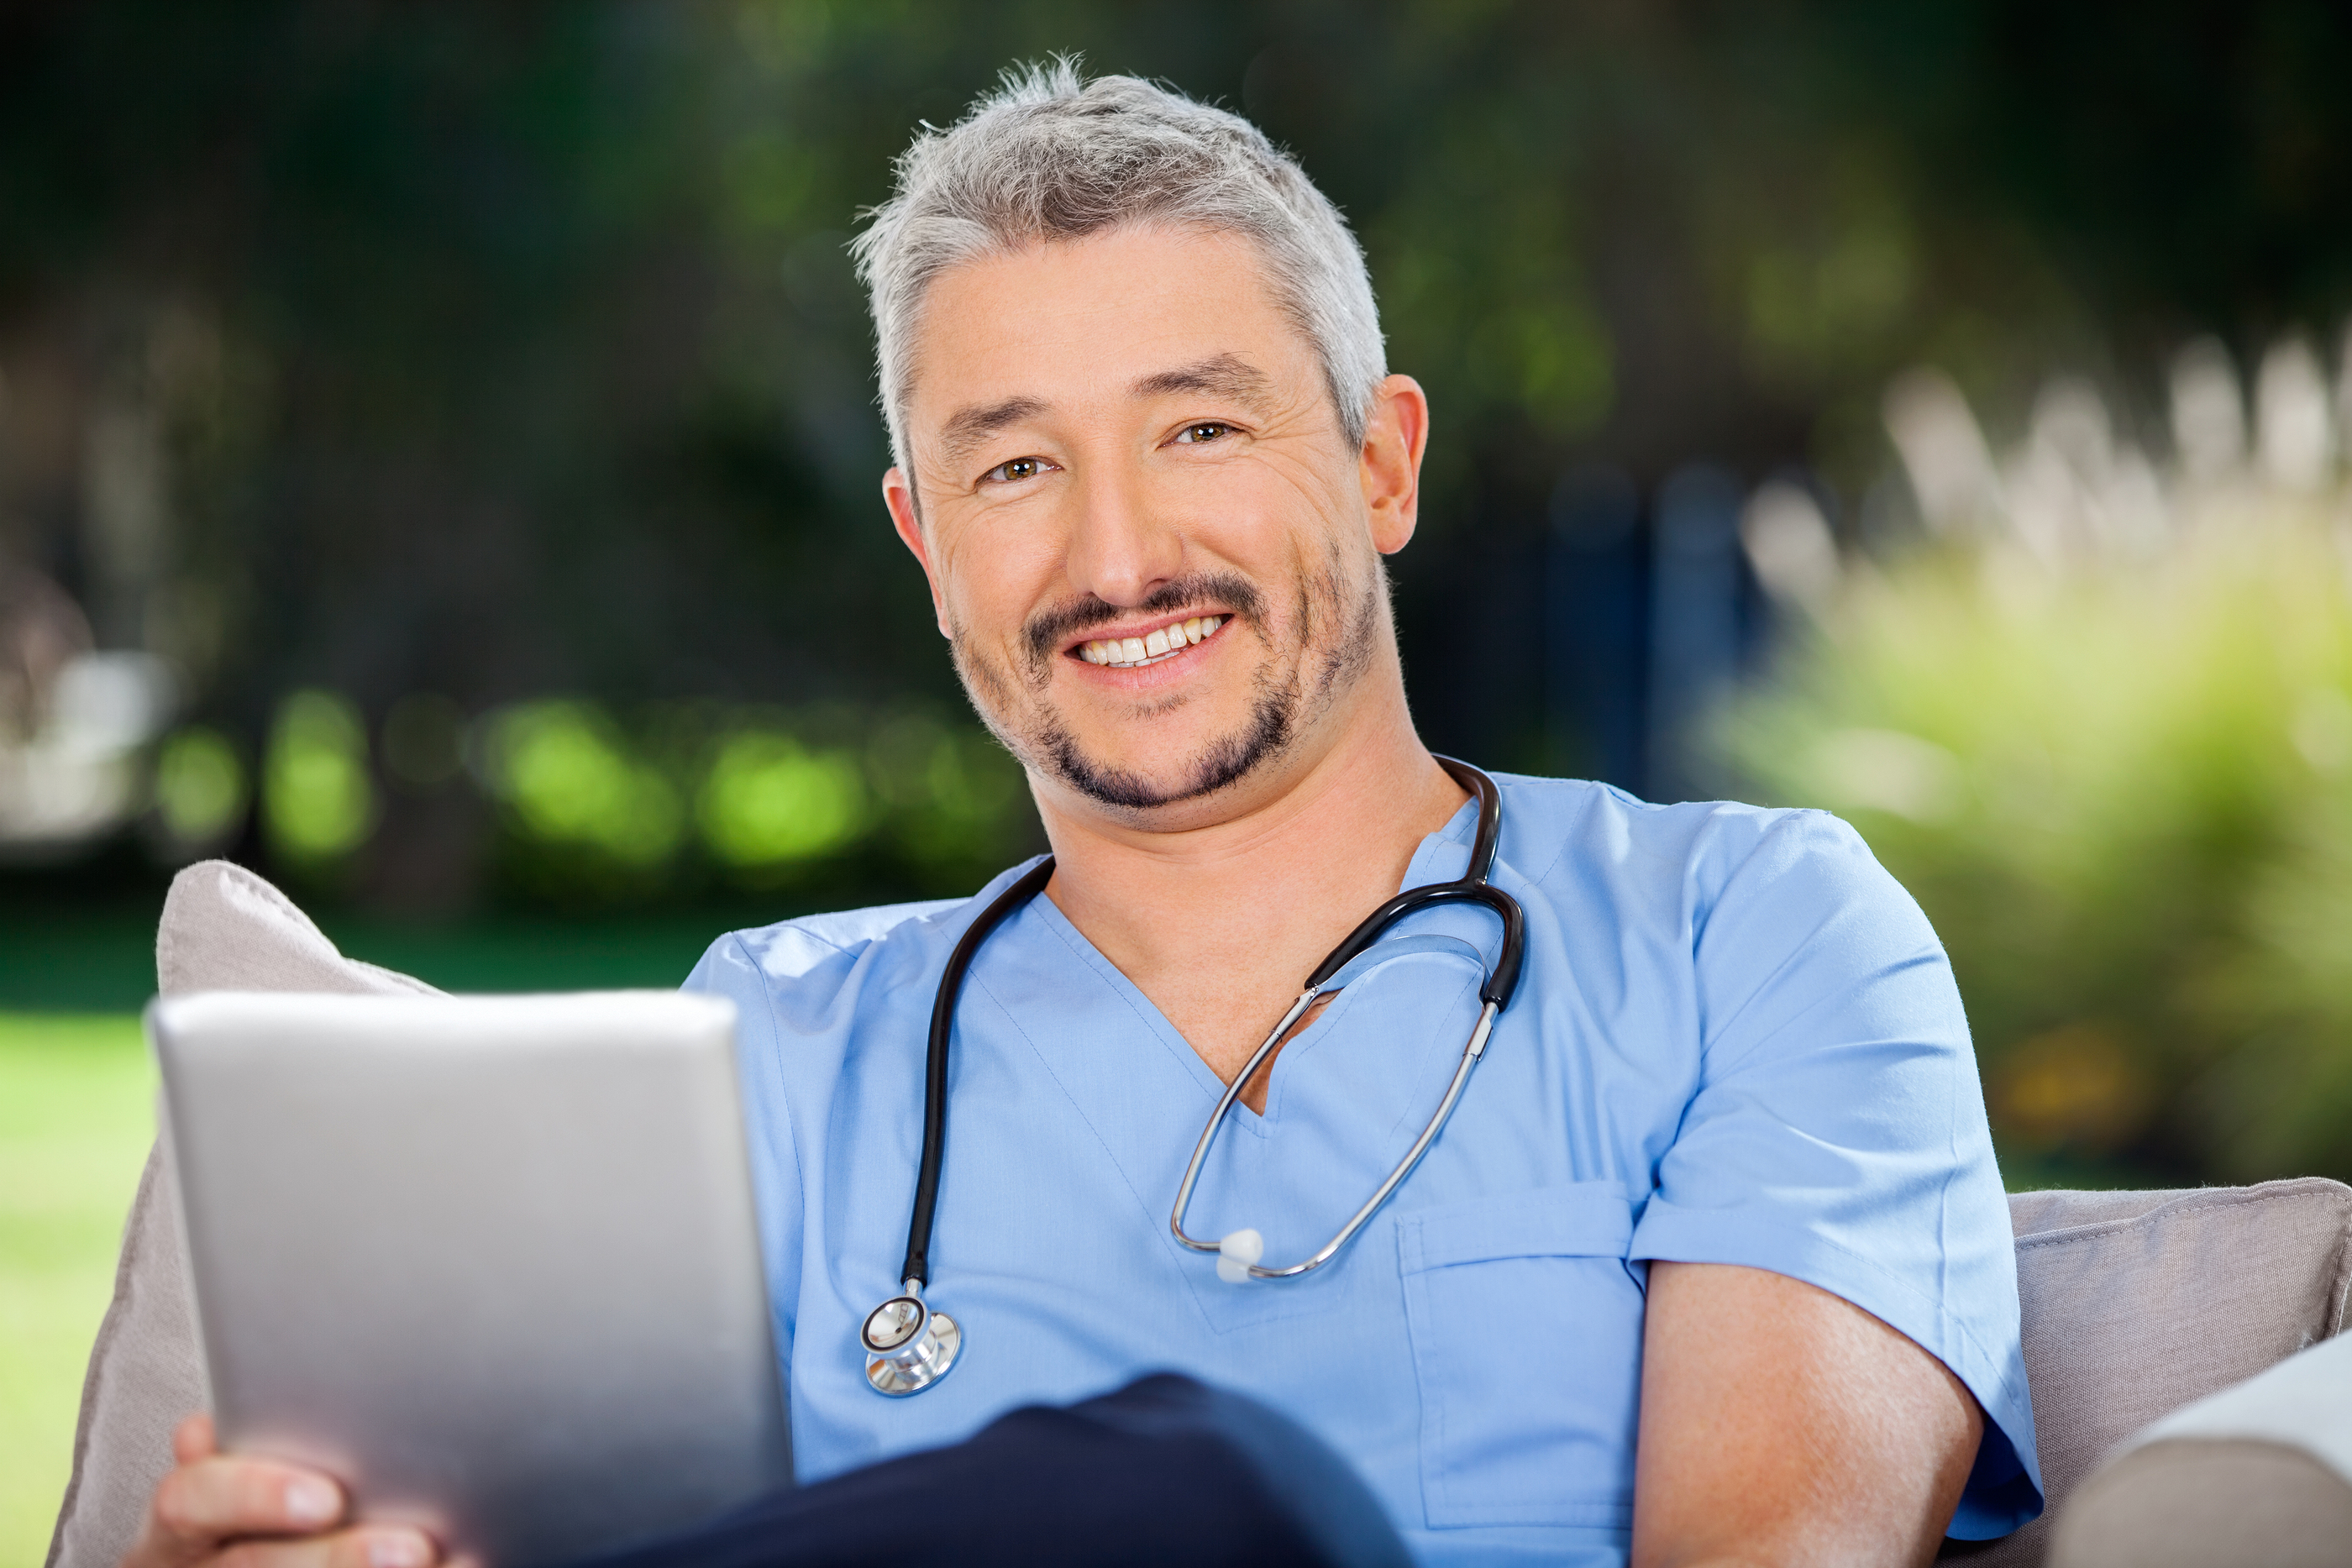 bigstock-Portrait-of-smiling-male-docto-83262461